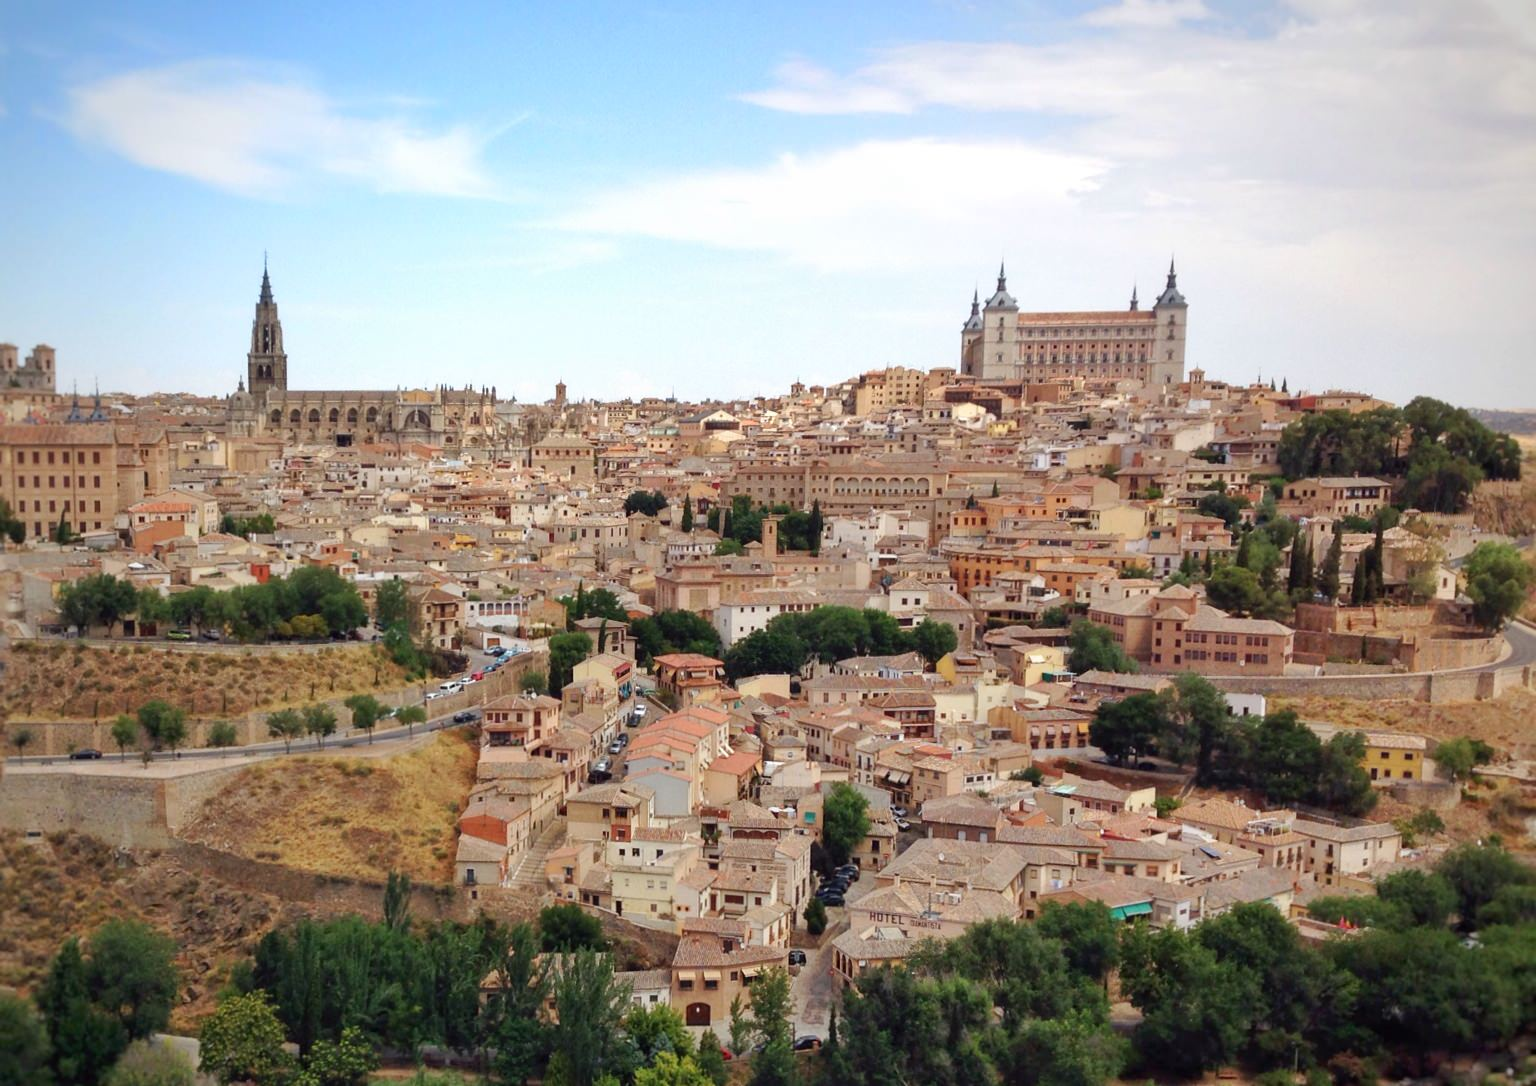 Toledo is such a beautiful city!